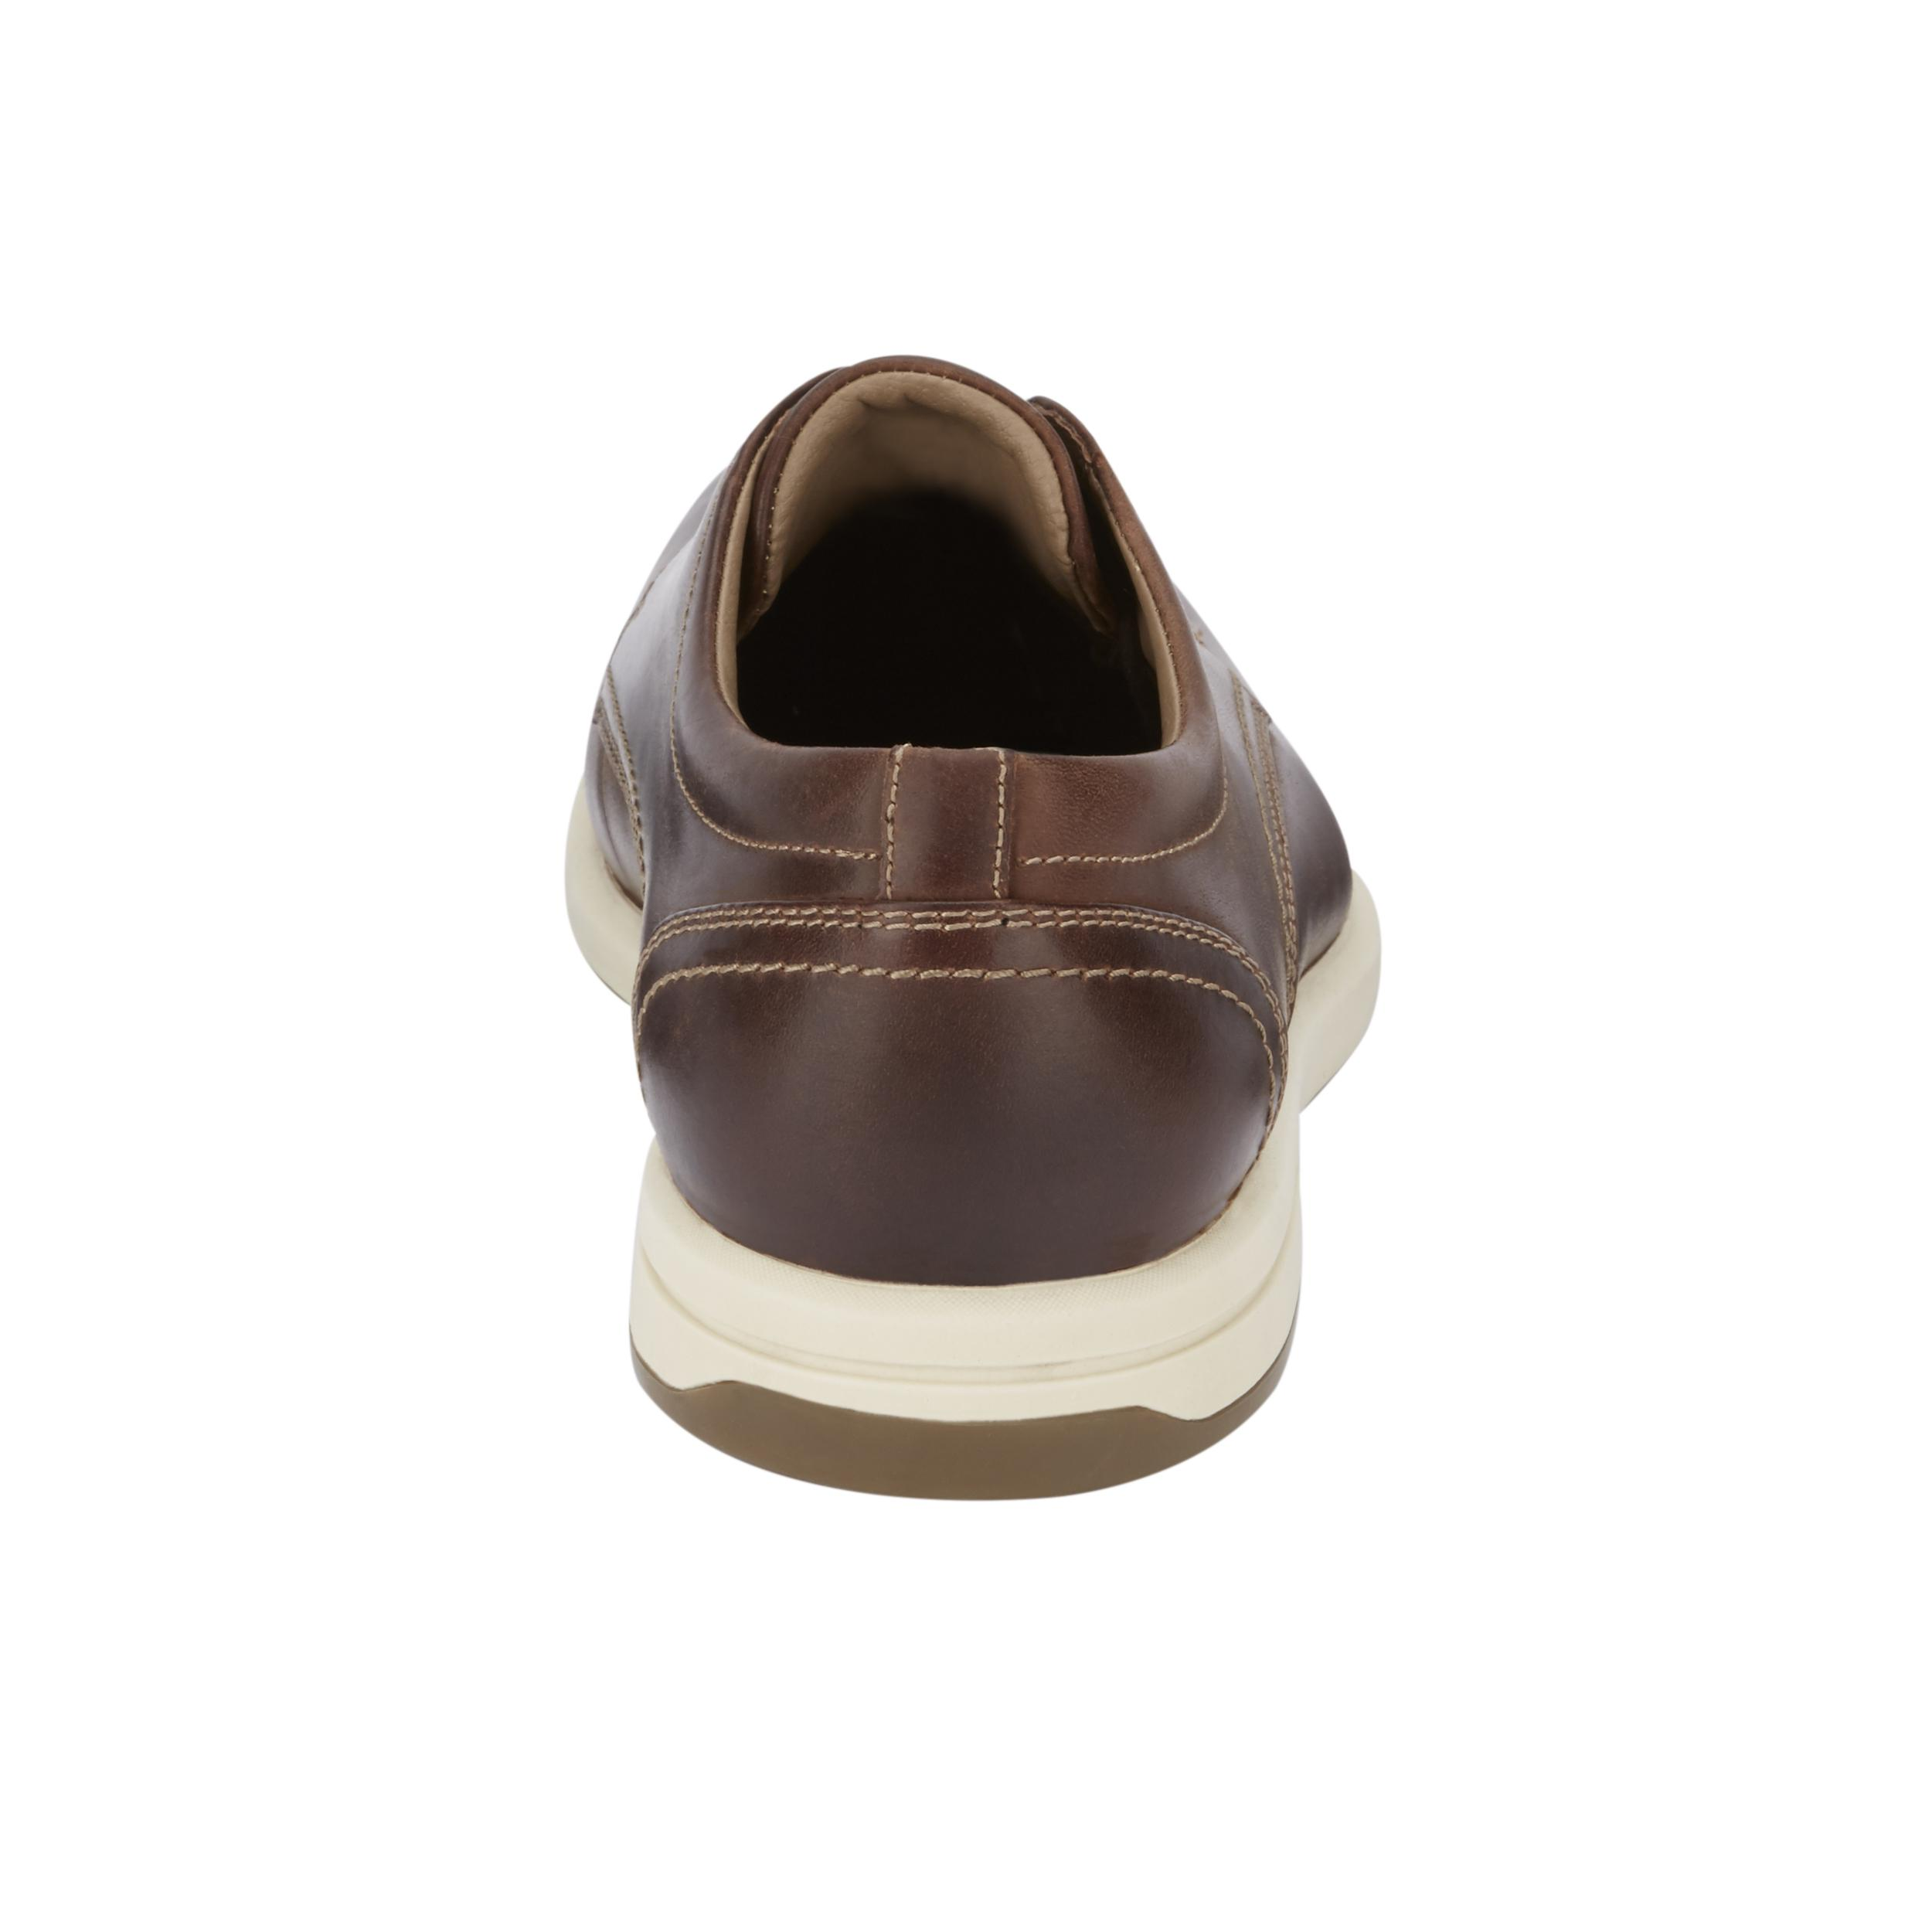 278ffd6bd4b270 Lyst - Dockers Parkview Leather Casual Oxfords in Brown for Men ...